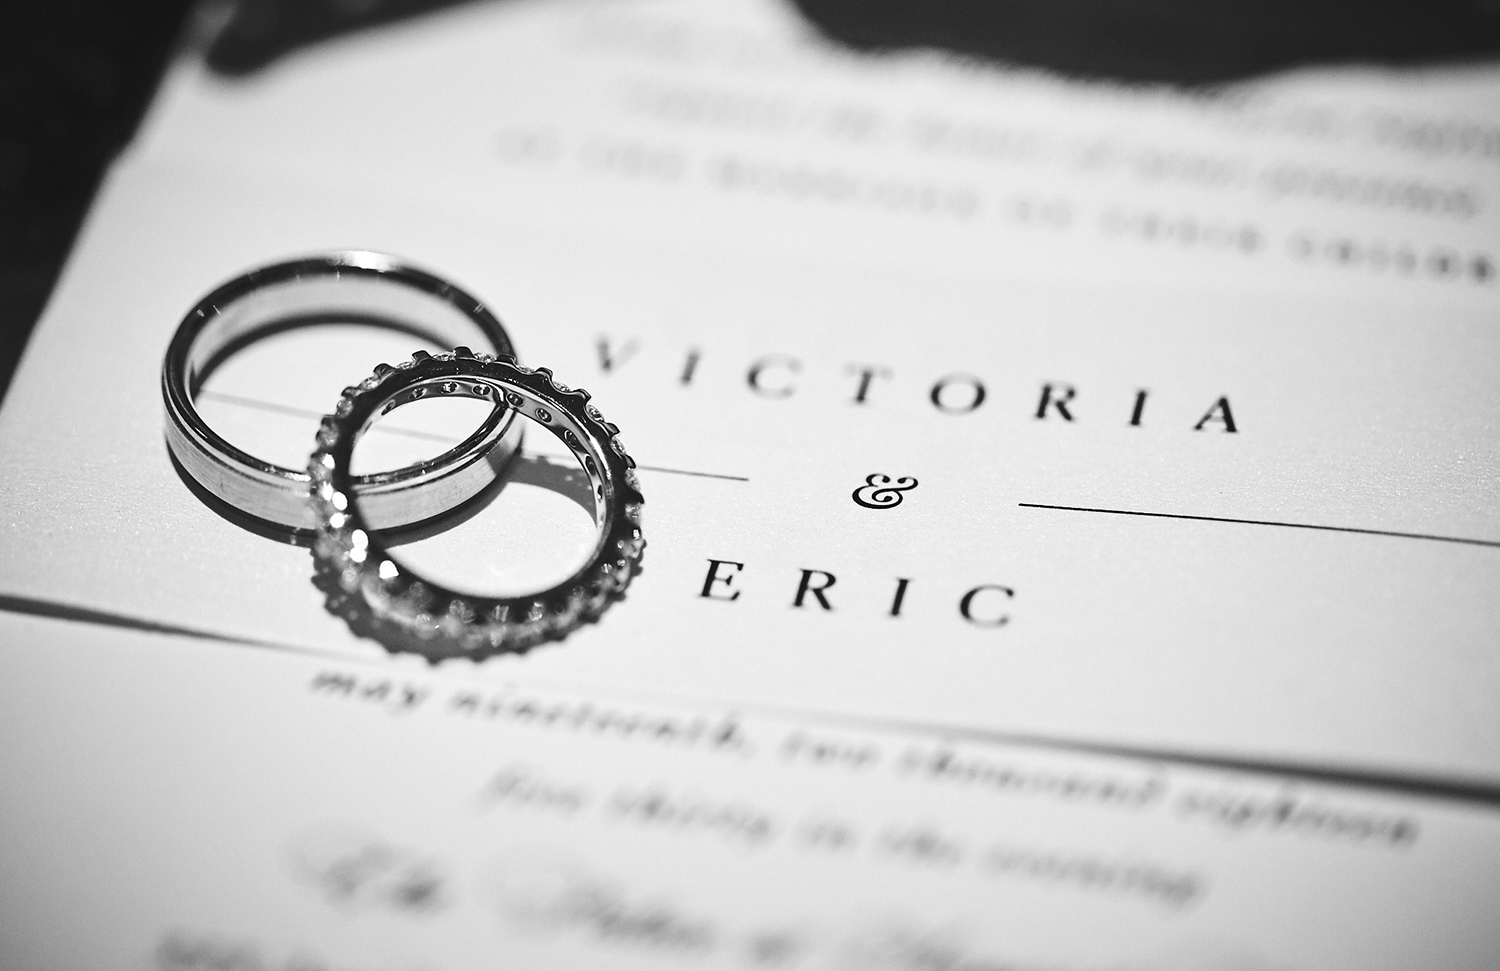 180519_PalaceatSomersetParkWeddingPhotography_NJWeddingPhotographer_By_BriJohnsonWeddings_0031.jpg